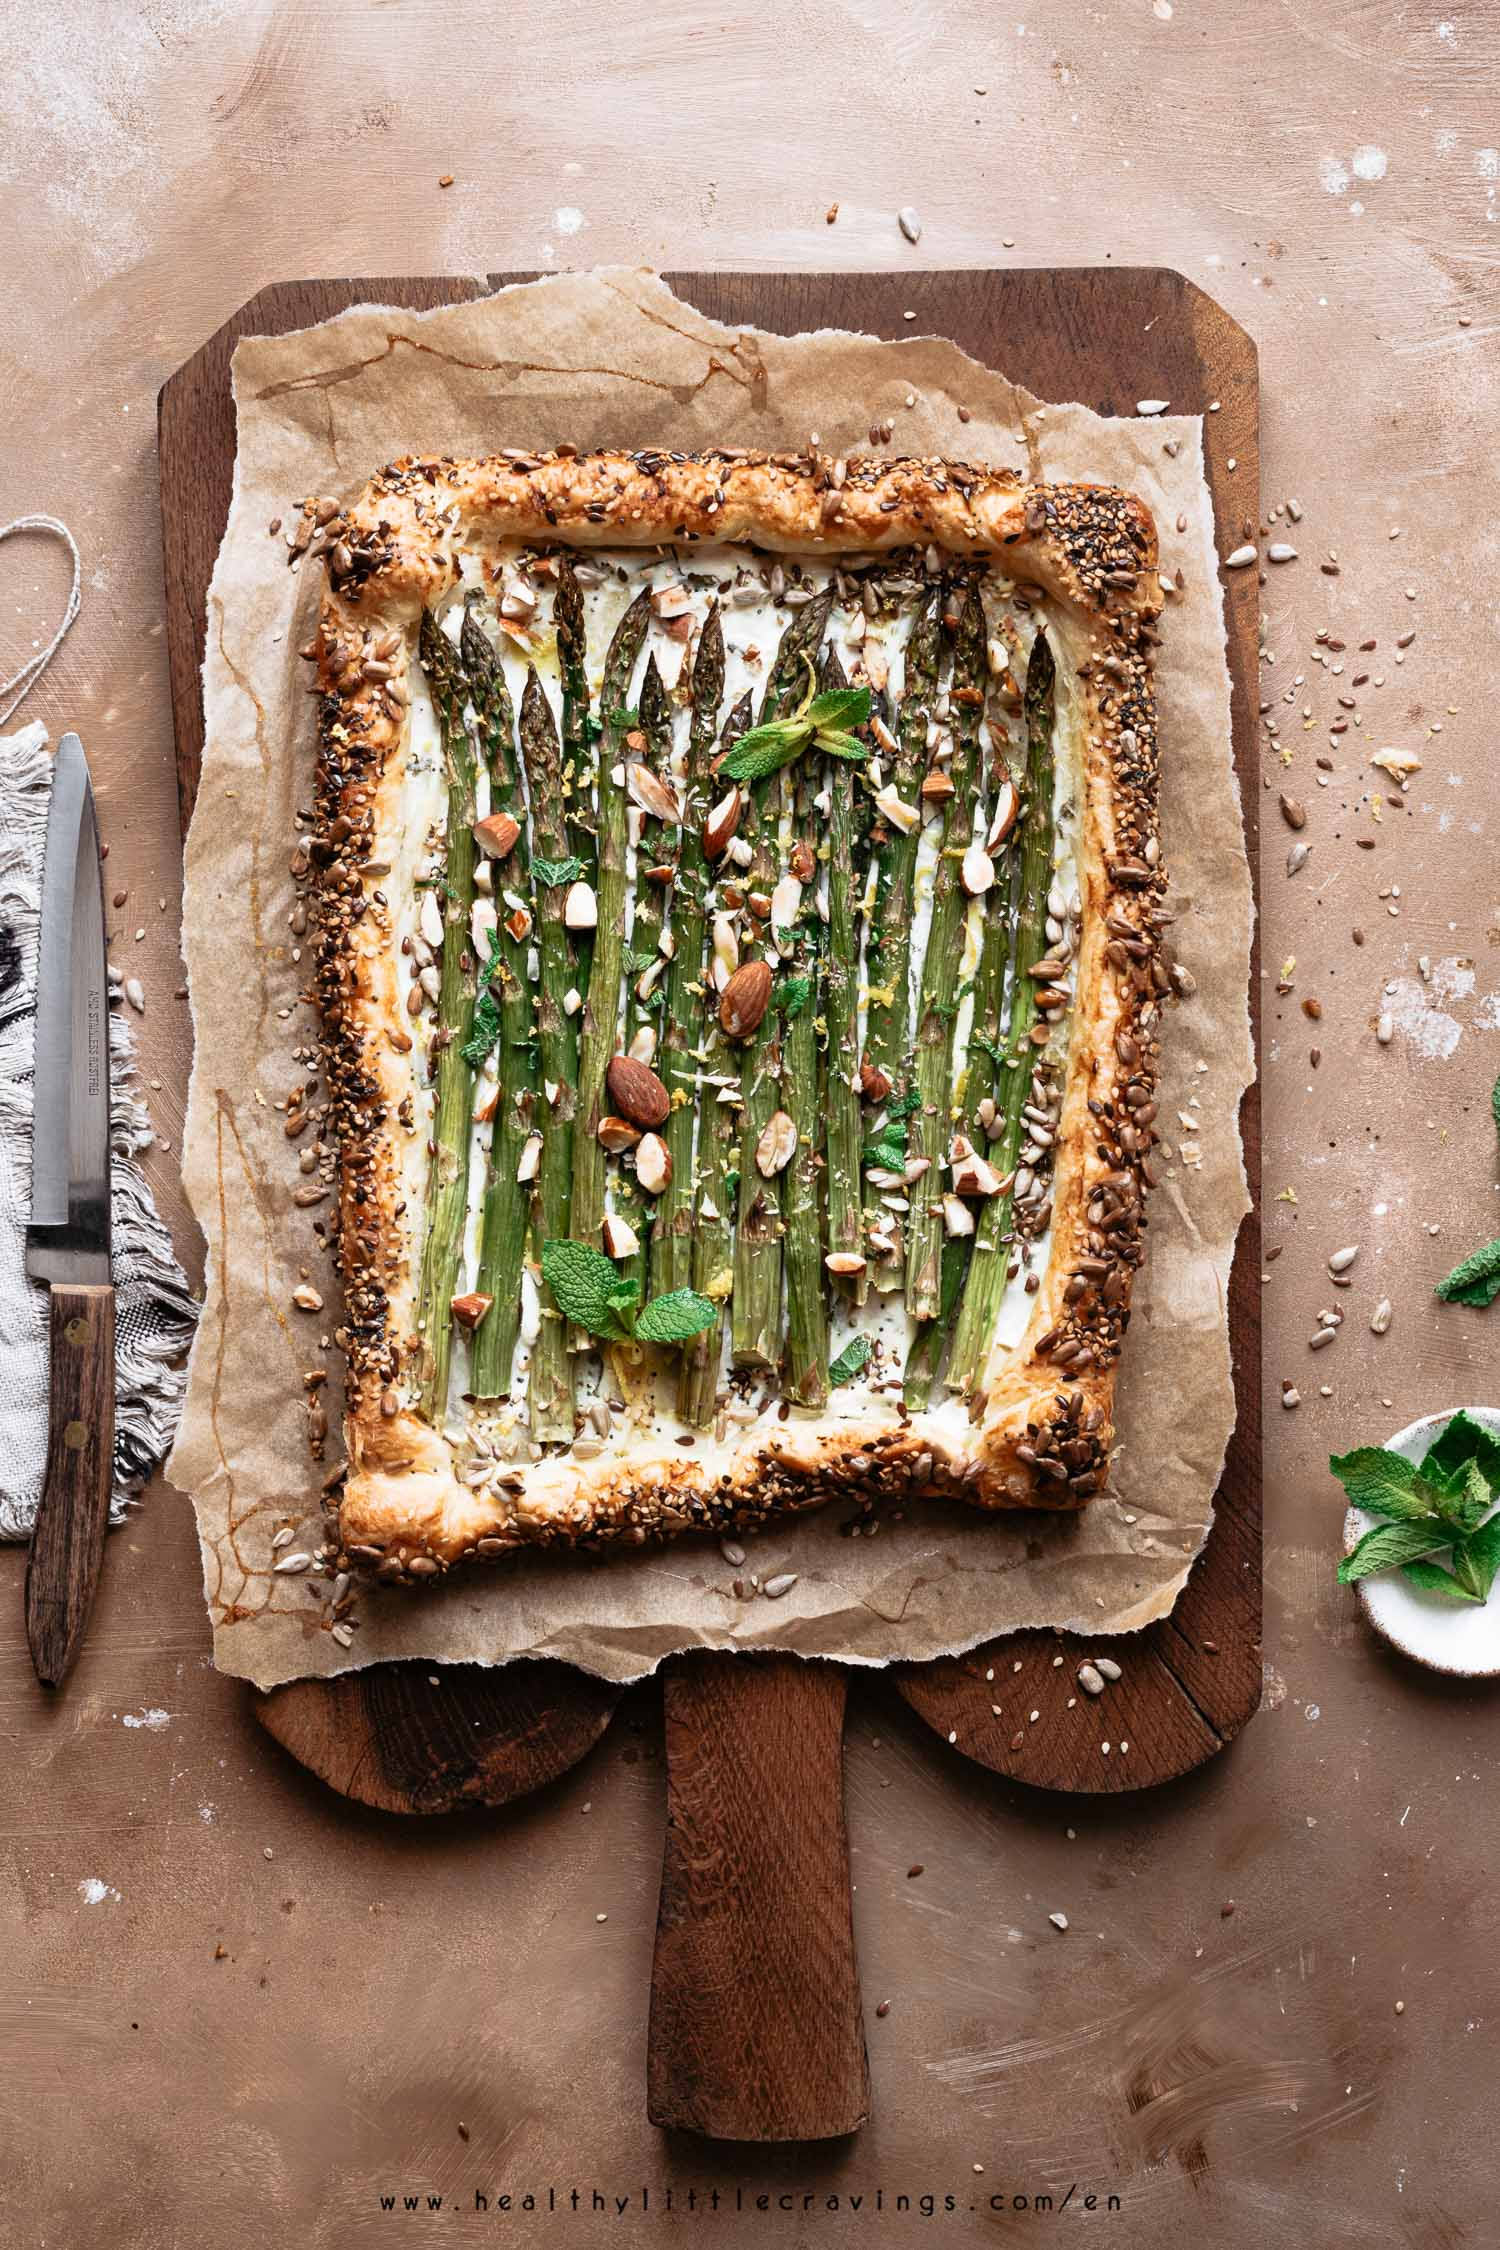 Asparagus tart on a rustic wooden cutting board